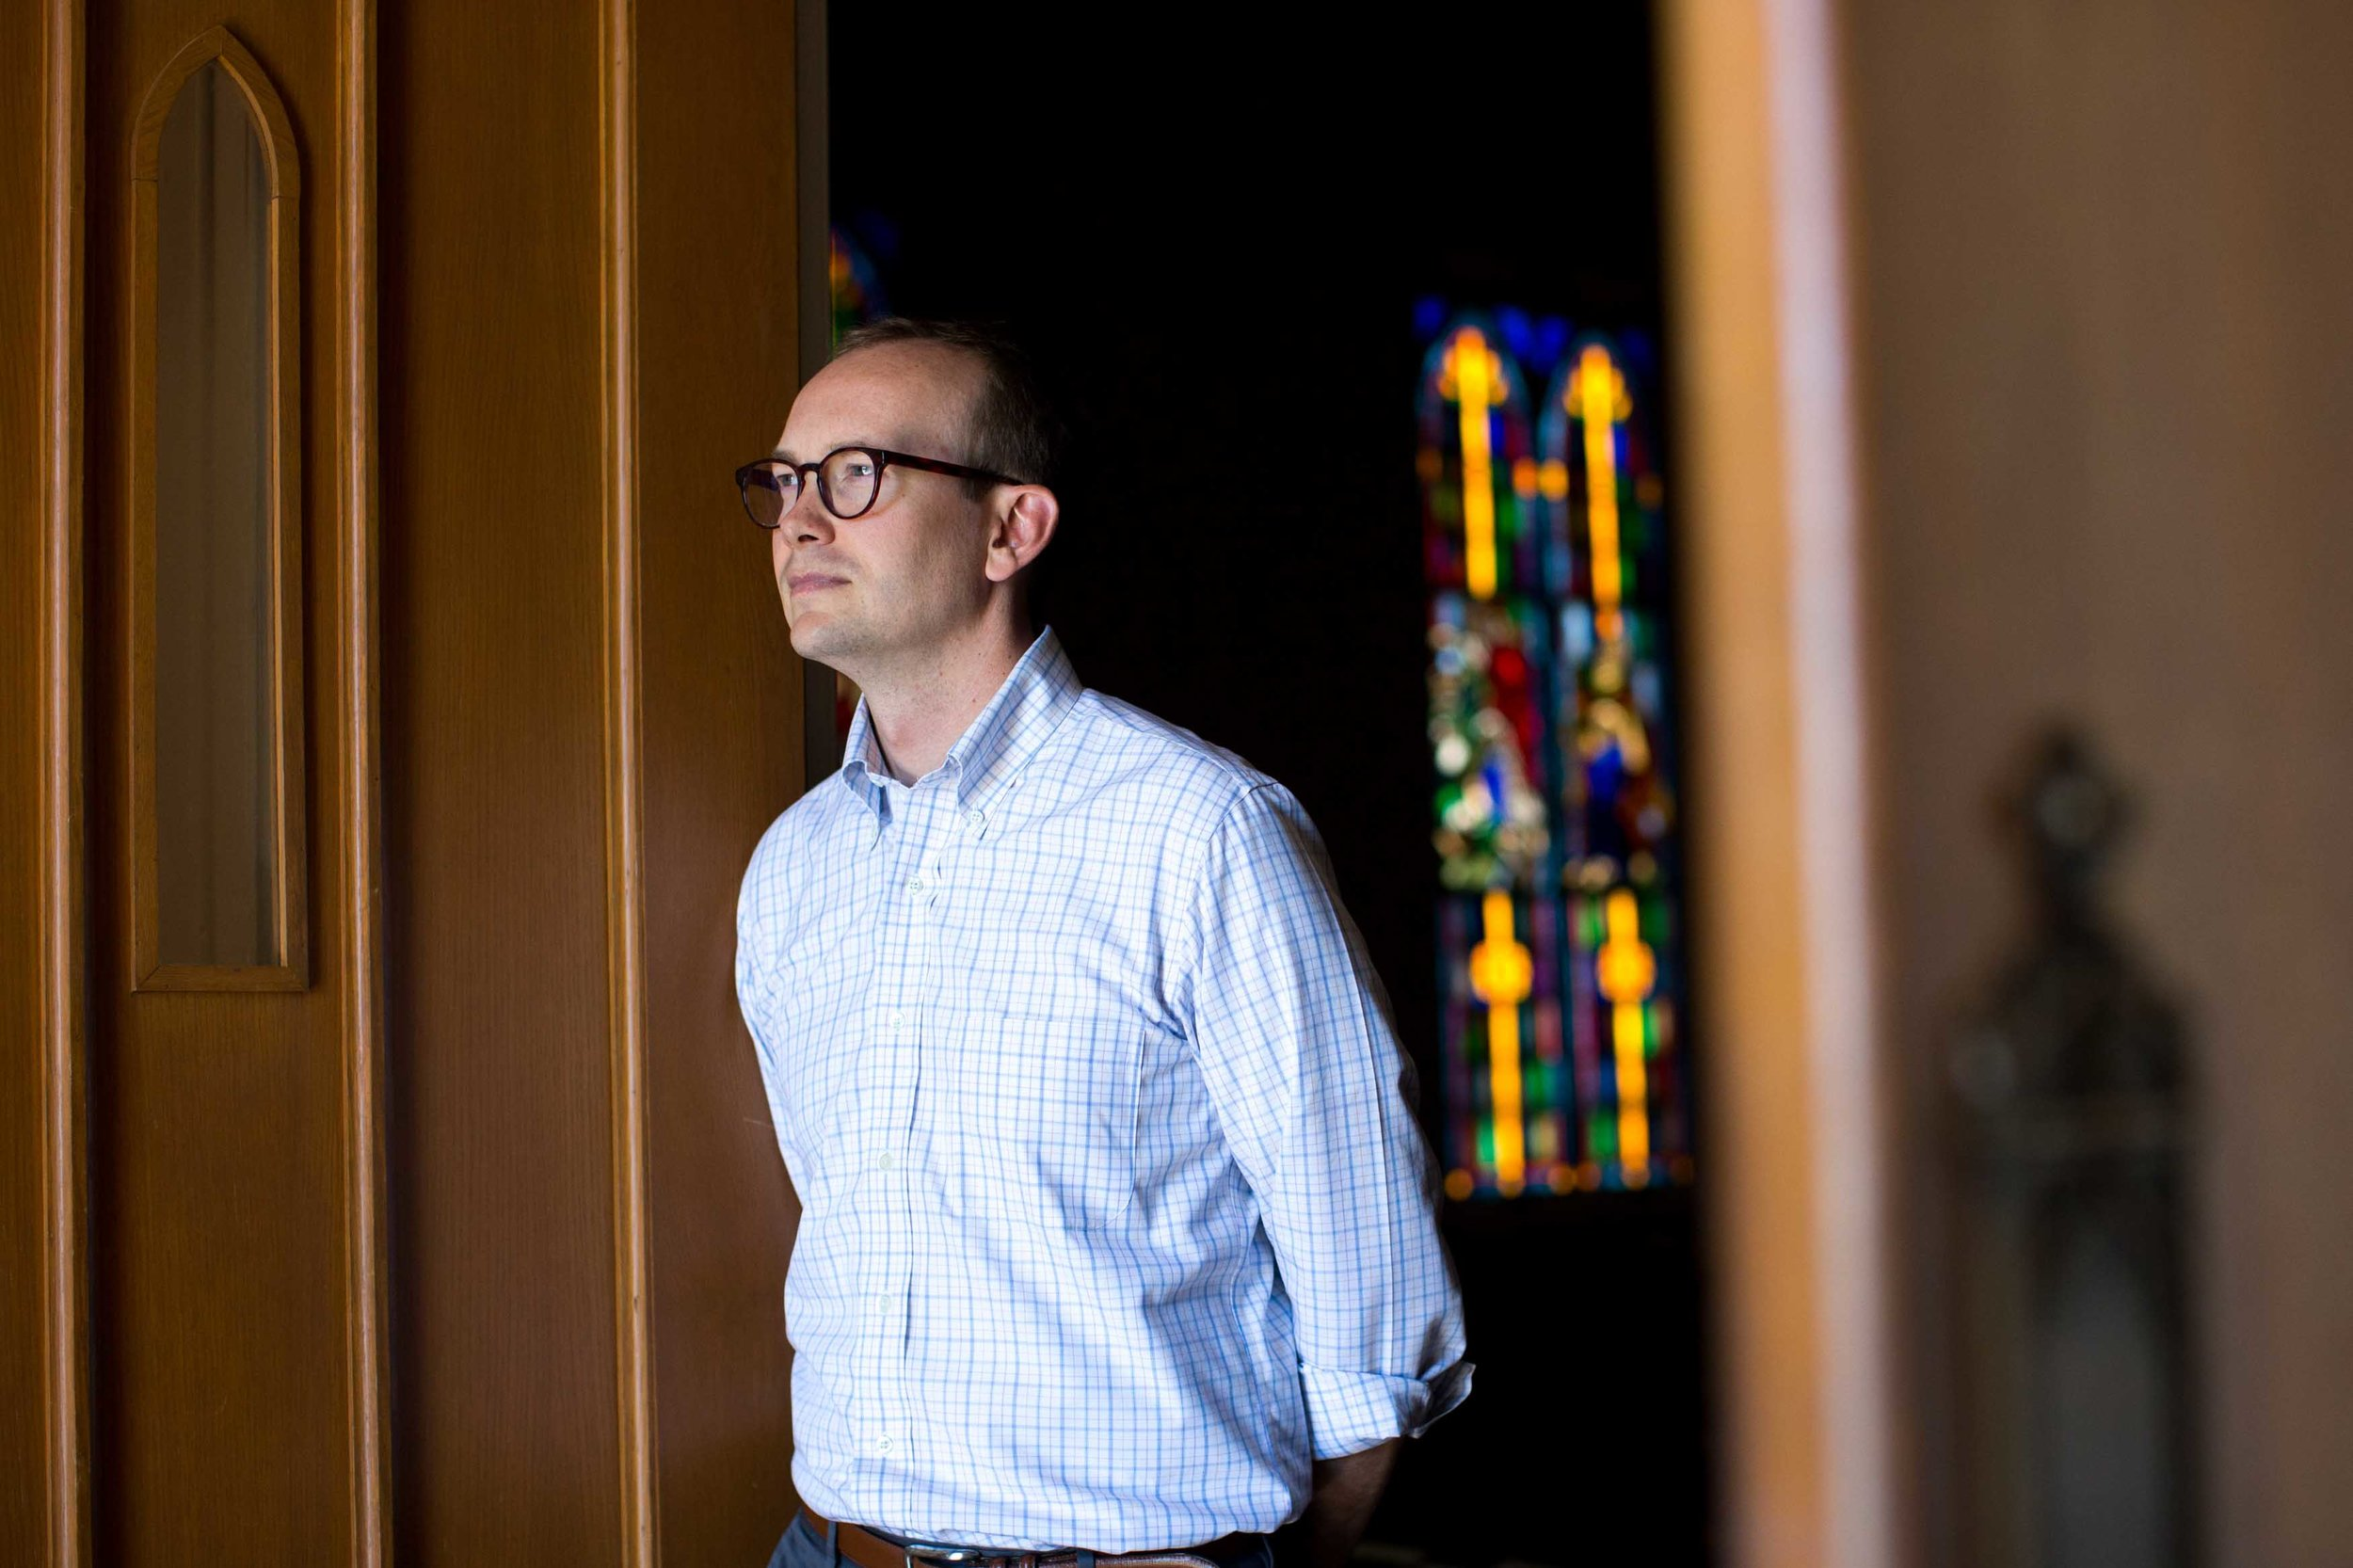 In this Monday, July 11, 2016 photo, the Rev. Scott Dickison poses for a portrait at the First Baptist Church of Christ, a predominantly white congregation, in Macon, Ga. The 33-year-old North Carolina native and Harvard Divinity School graduate became the pastor about four years ago. (AP Photo/Branden Camp)